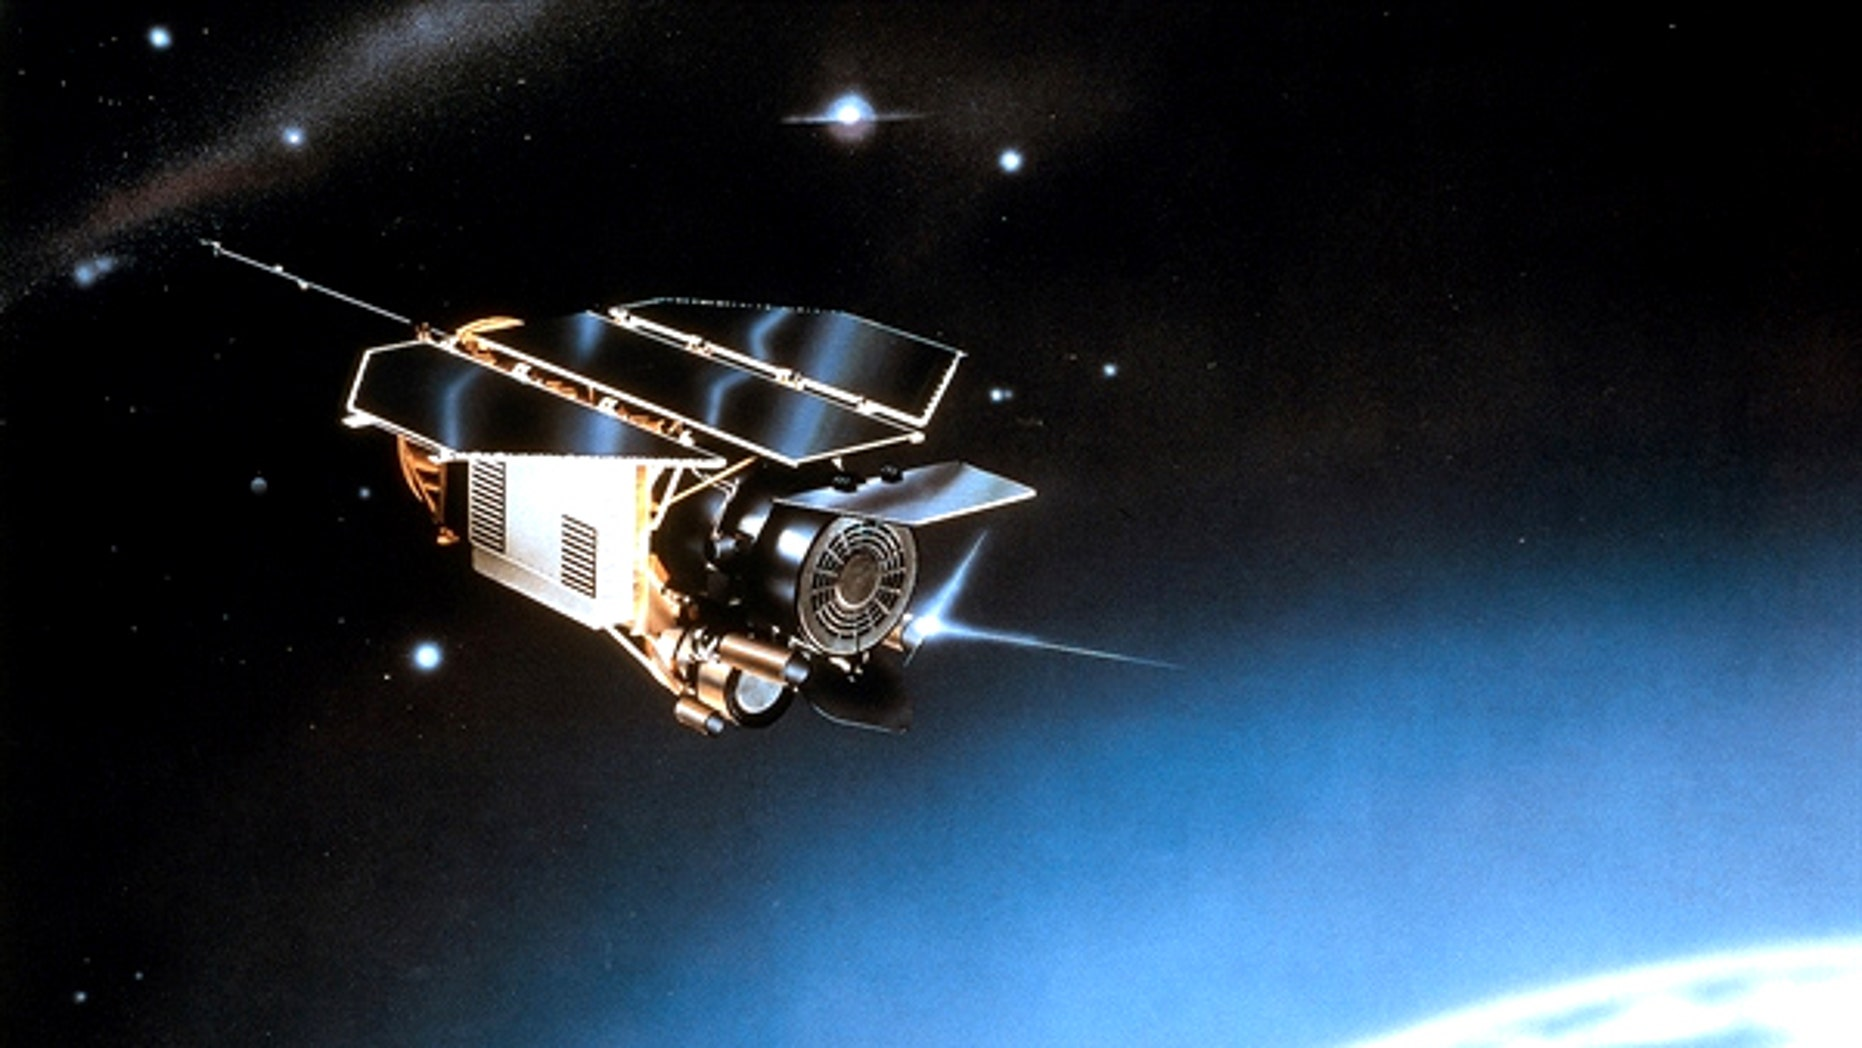 An artist's impression of the German ROSAT satellite orbiting in space.